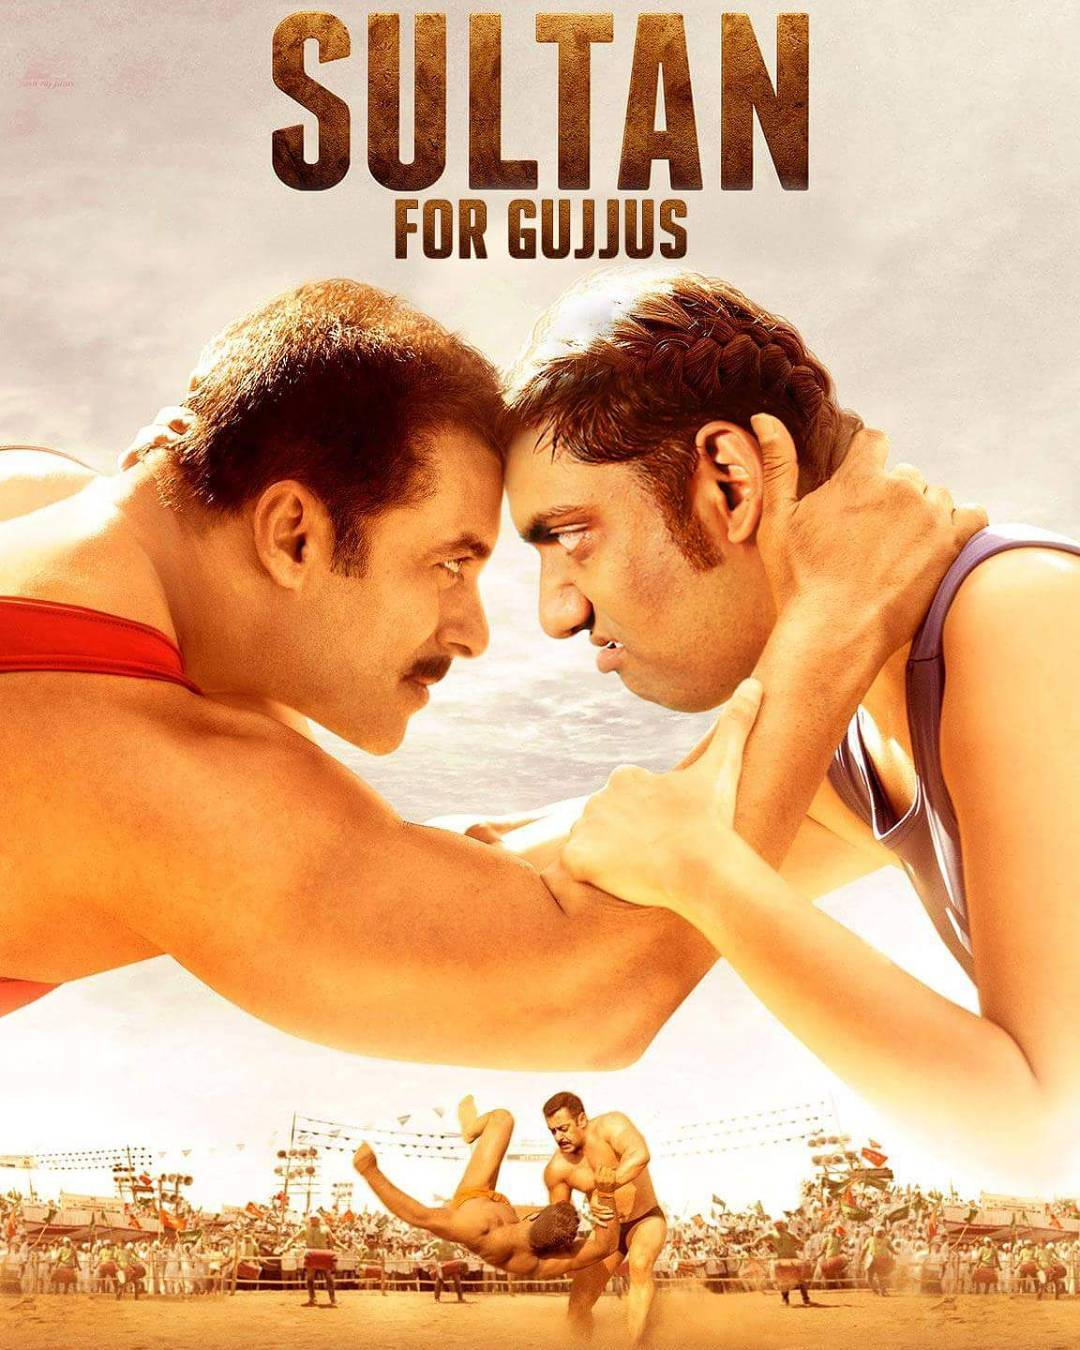 Releasing SOON. #sultan #karde #chataai